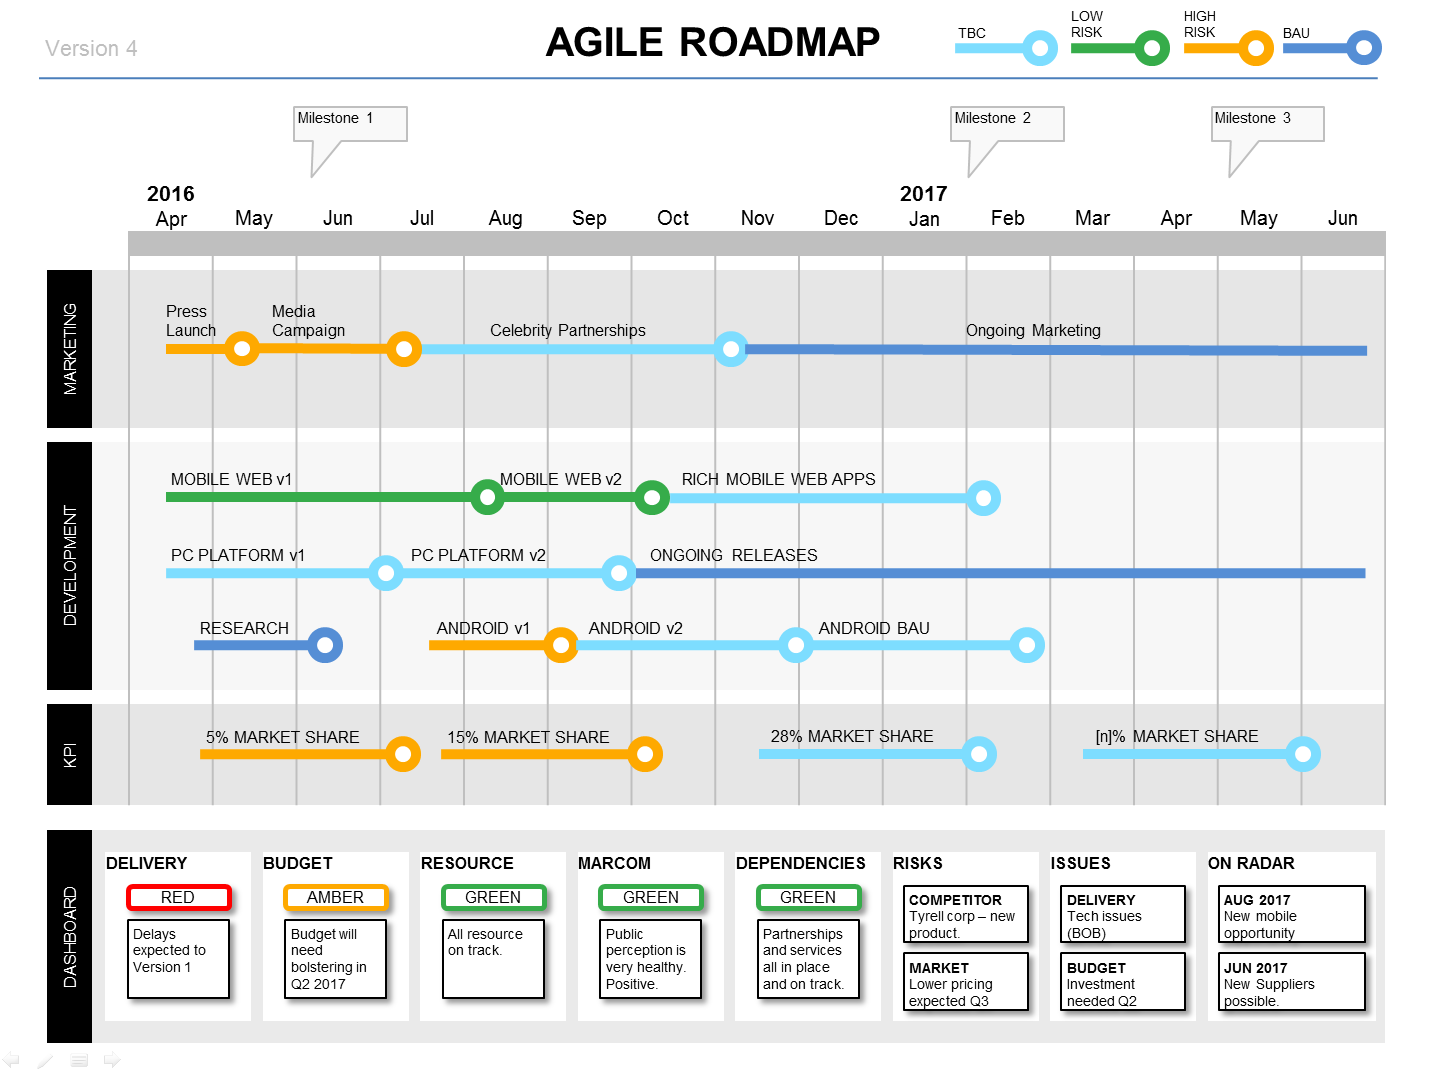 The Powerpoint Agile Roadmap Dashboard slide shows project